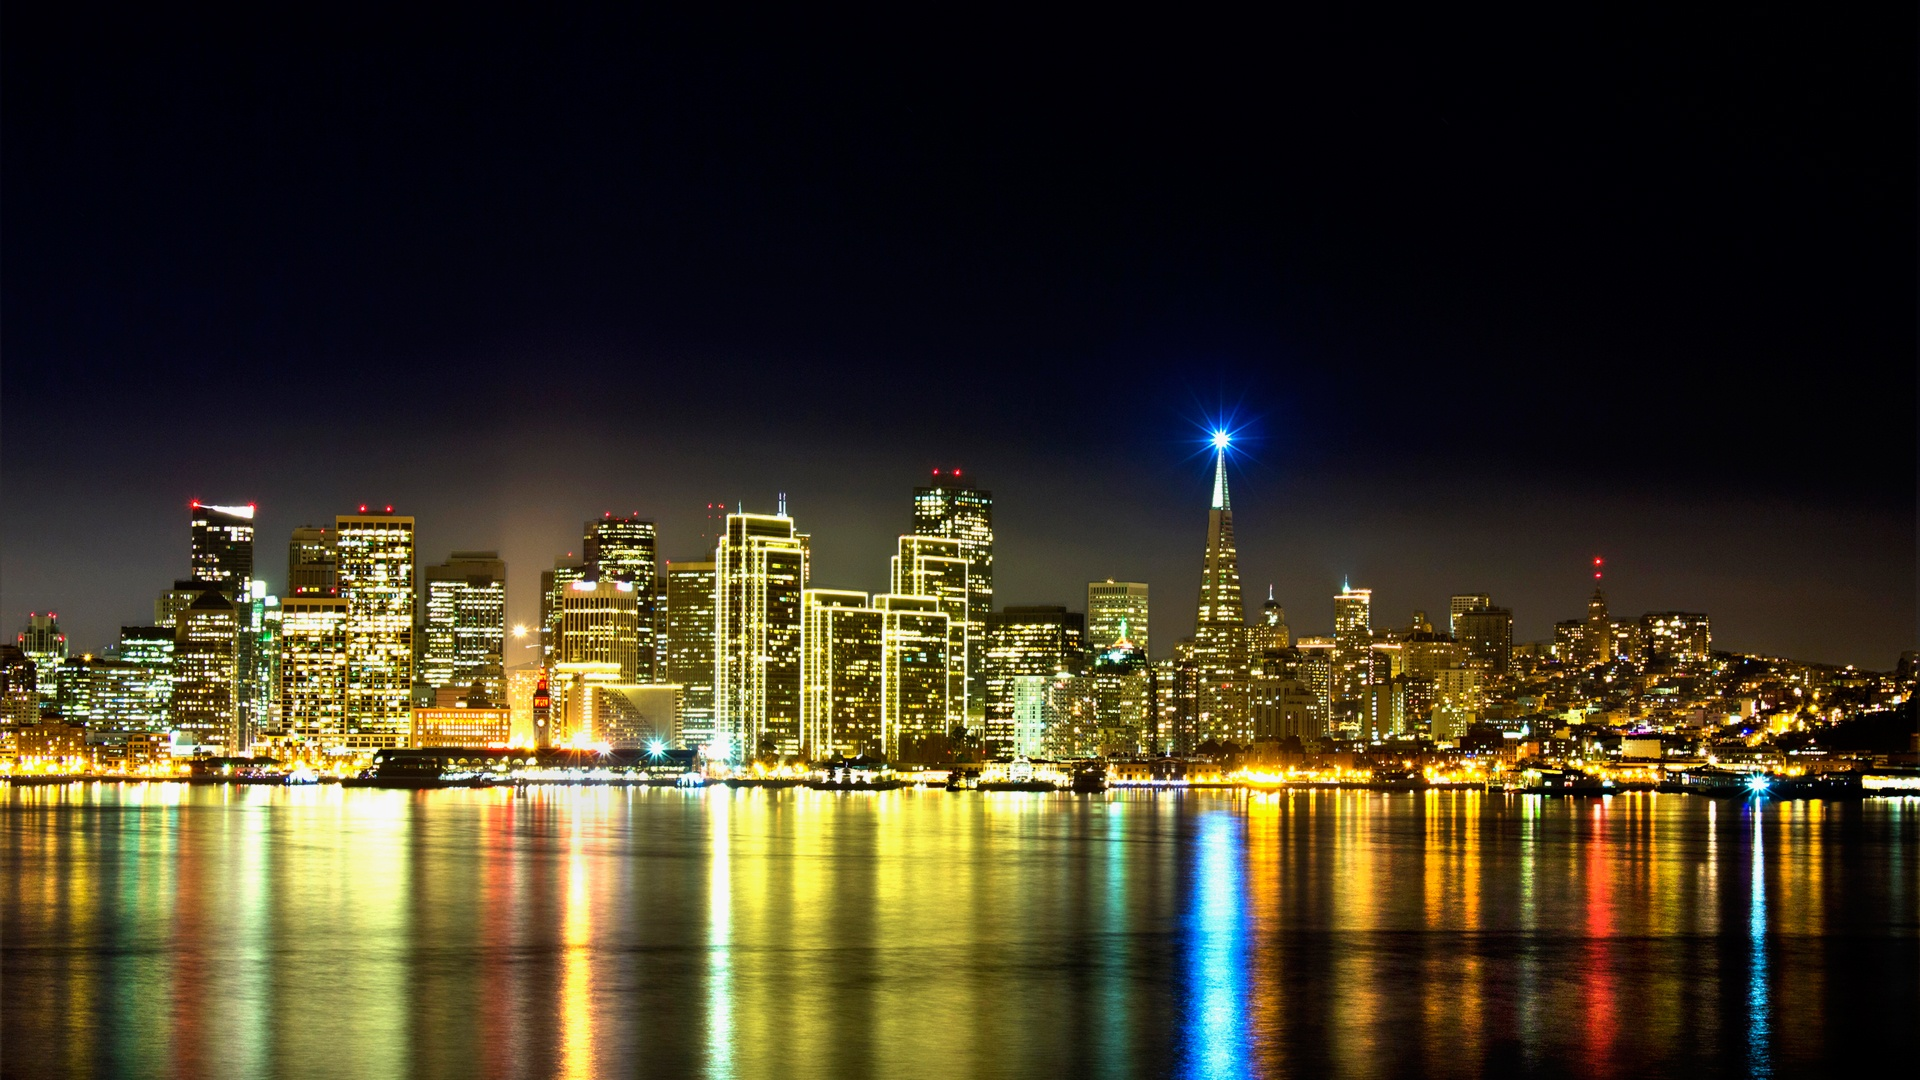 San Francisco Skyline Wallpapers In Jpg Format For Free Download